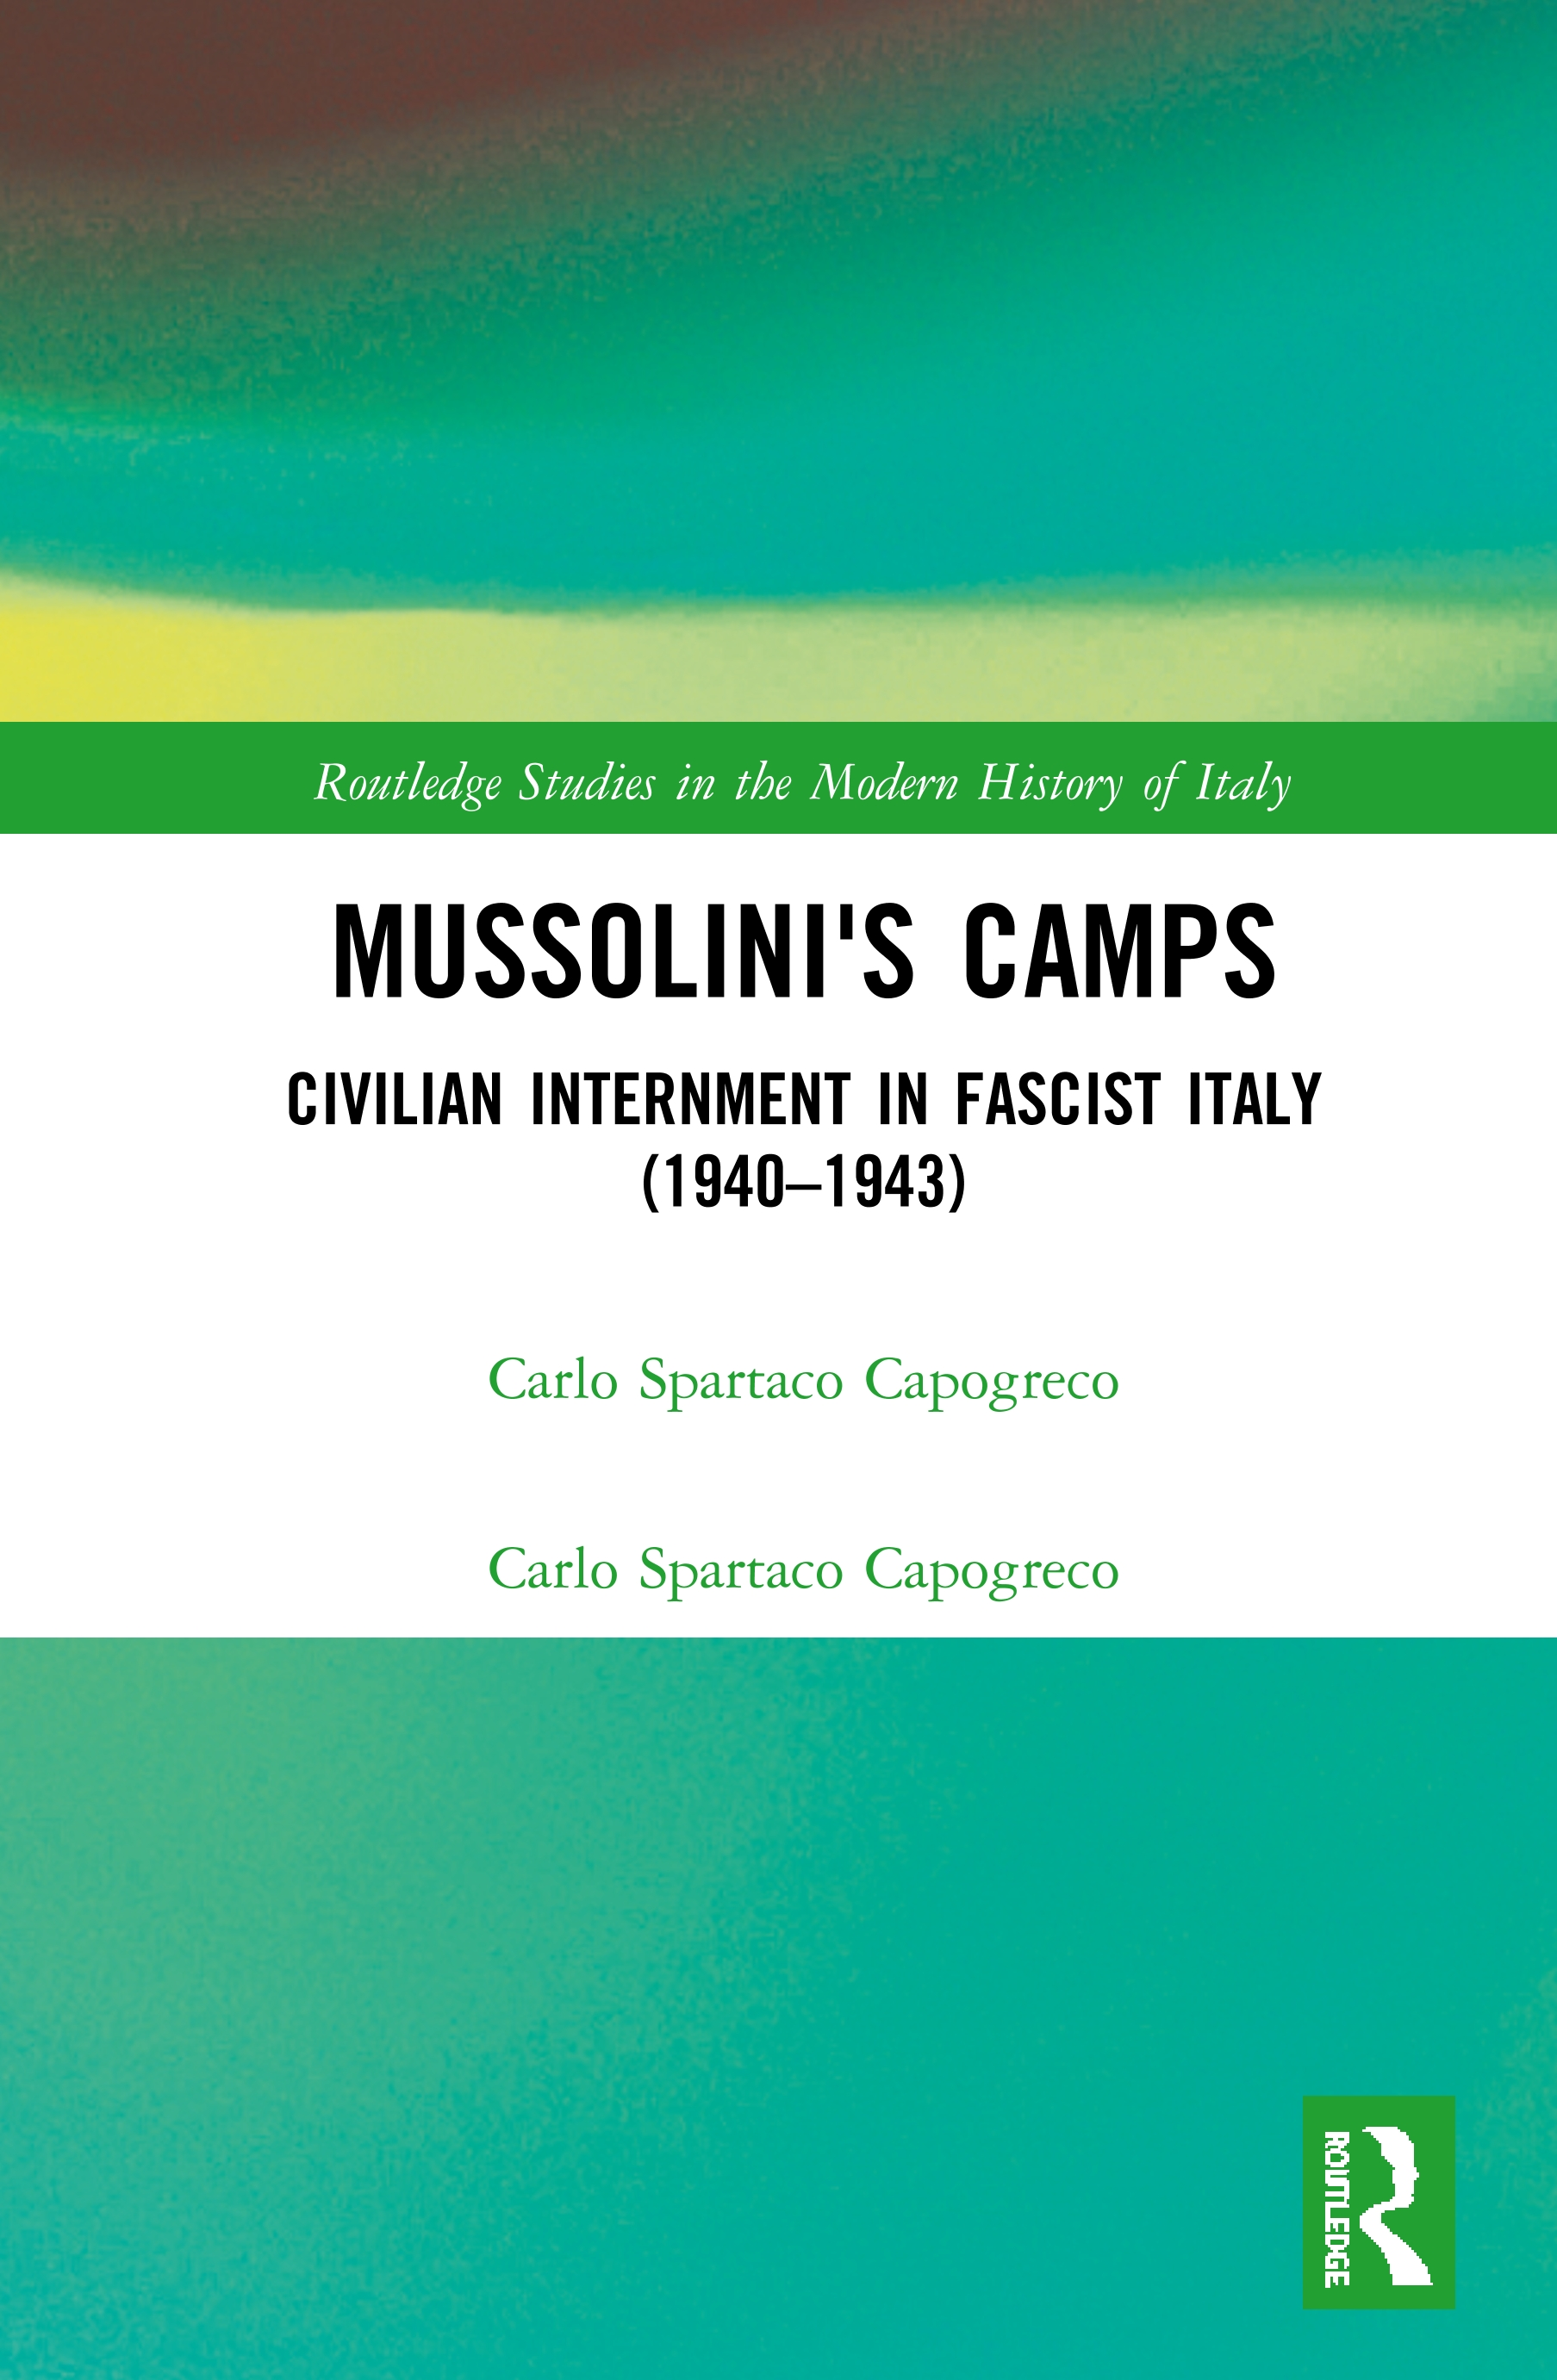 Mussolini's Camps: Civilian Internment in Fascist Italy (1940-1943) book cover